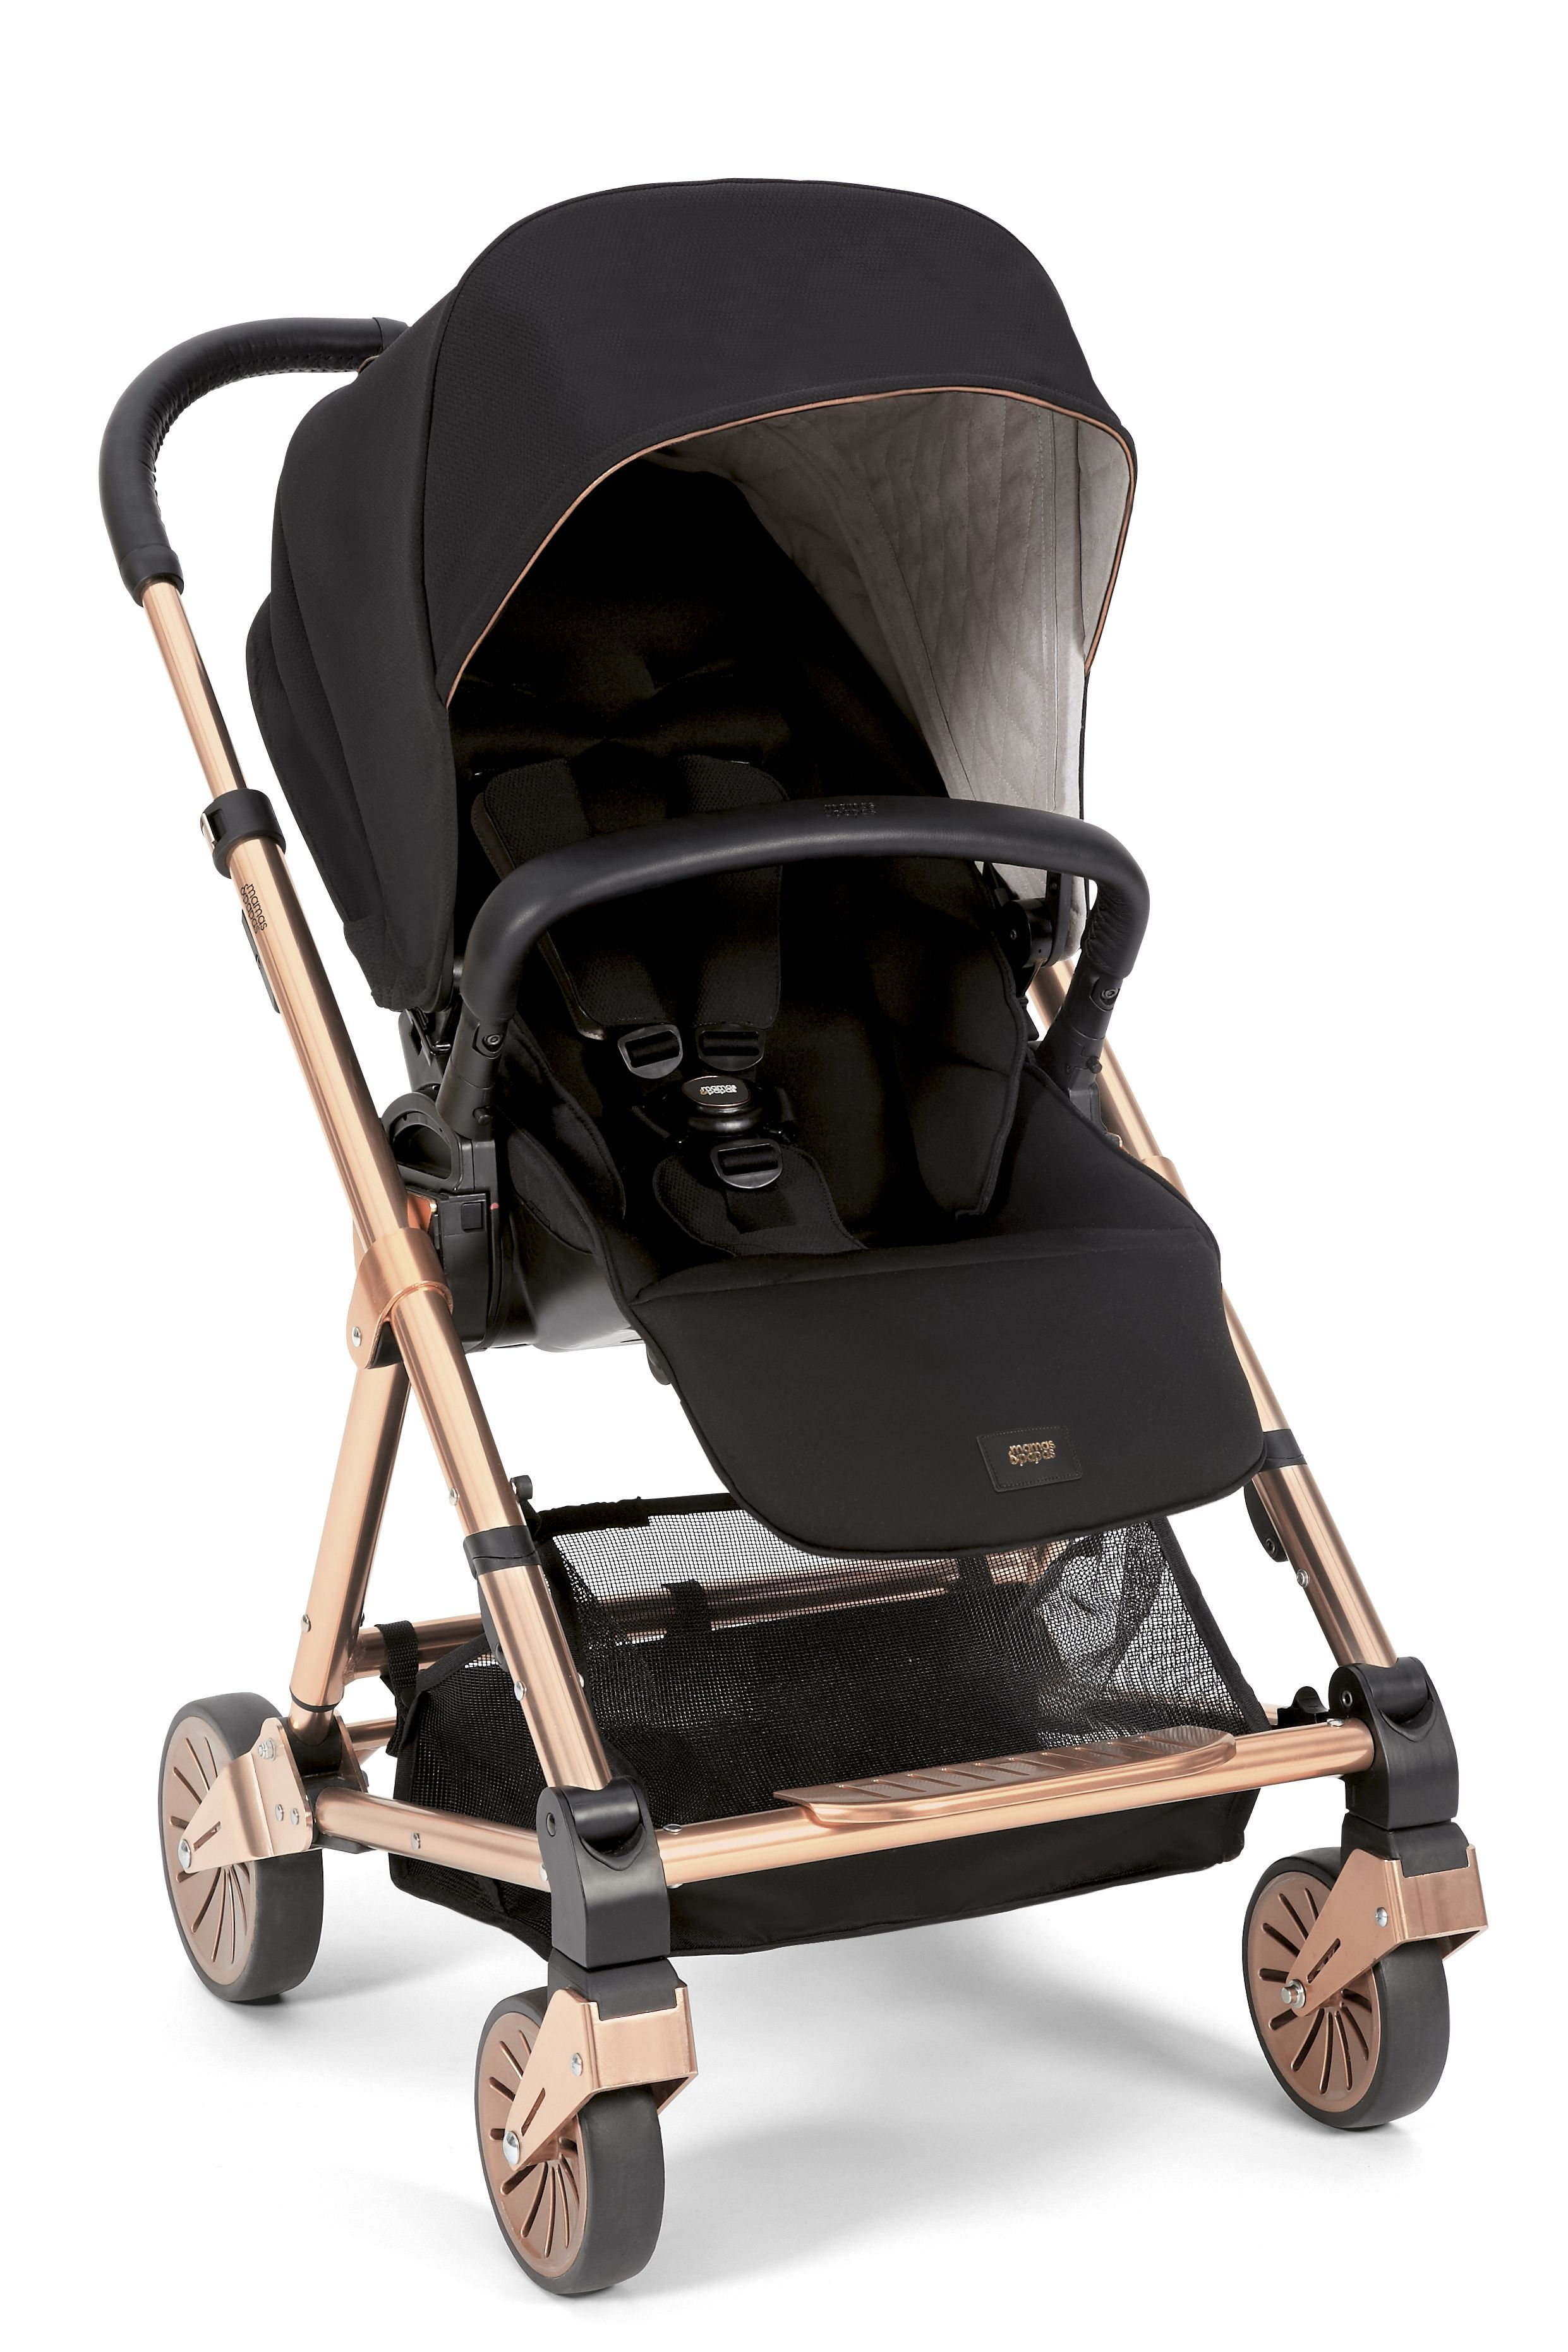 urbo 2 rose gold Google Search Baby strollers, Rose